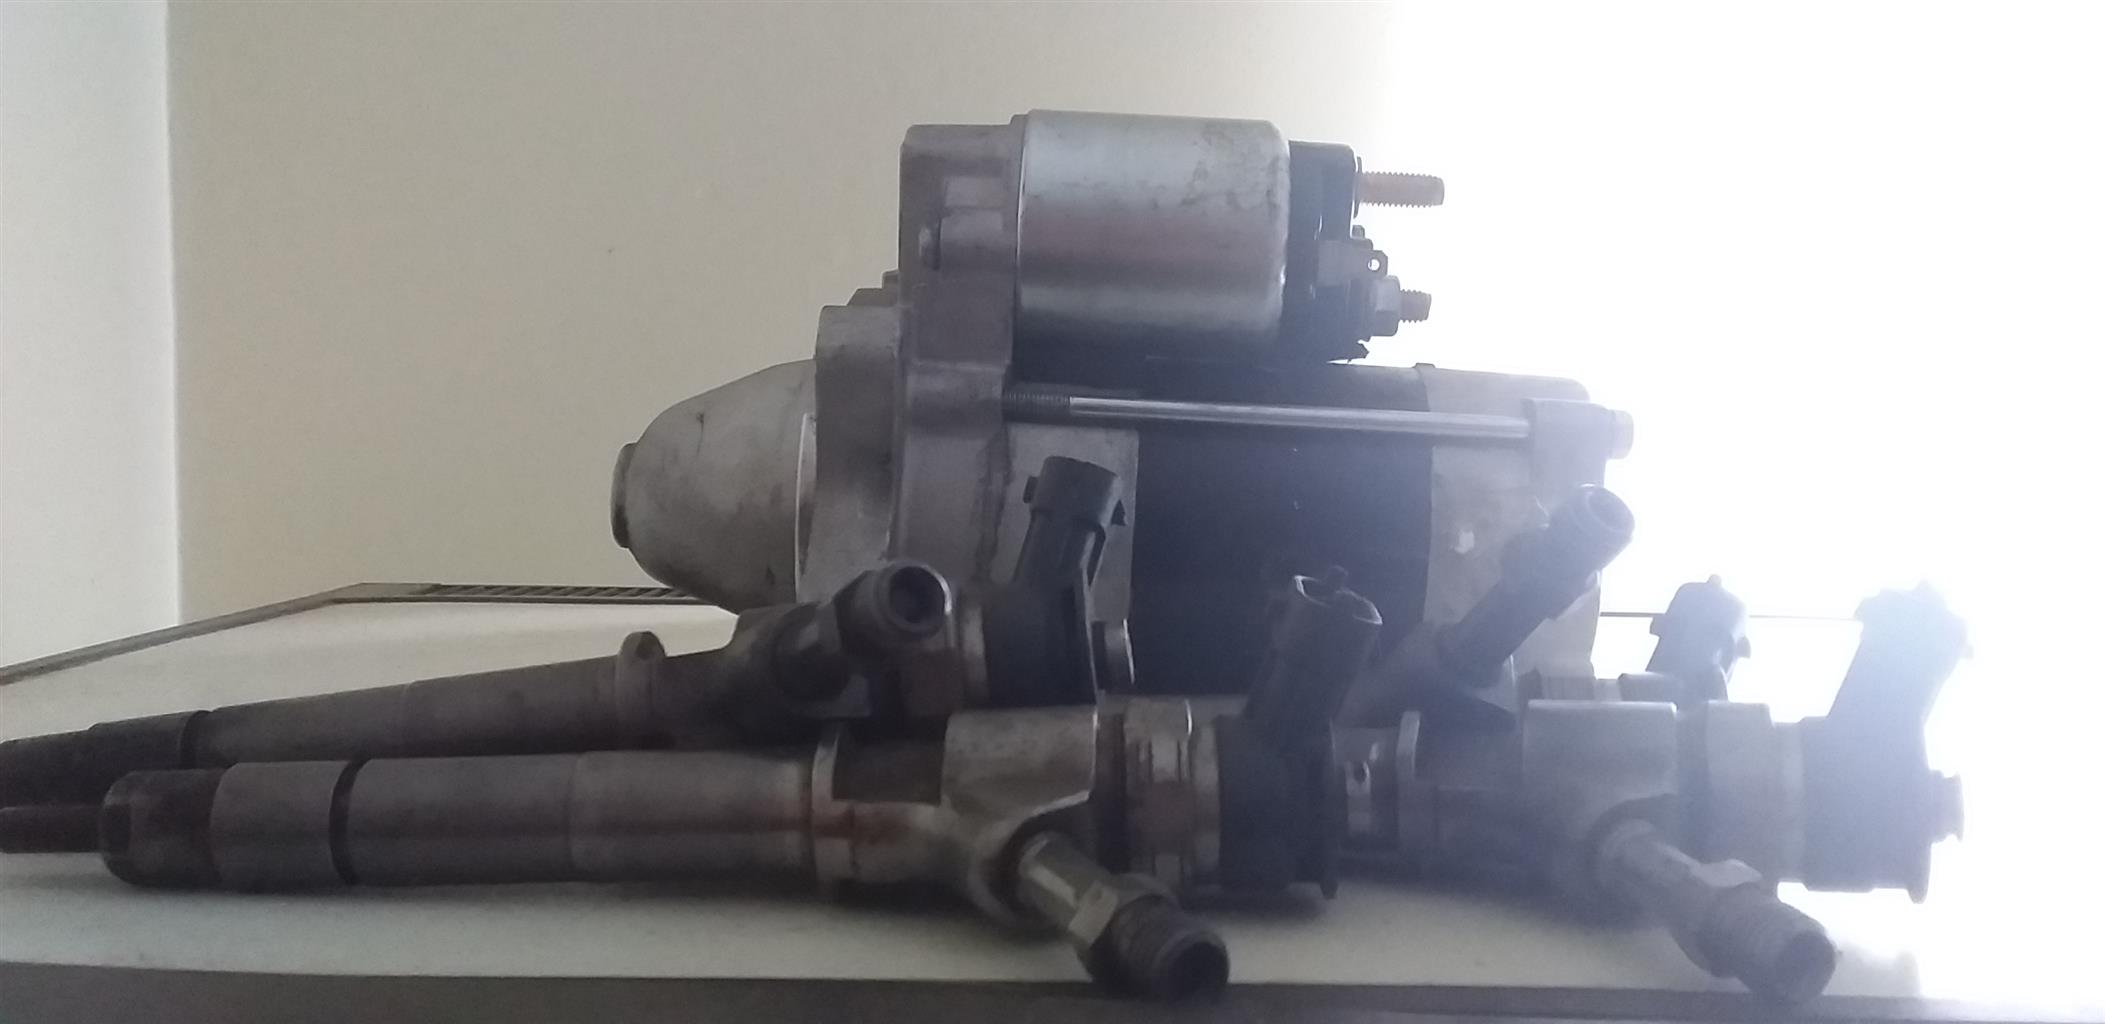 Diesel rail injectors and a starter for a Mazda BT50. A big bargain.